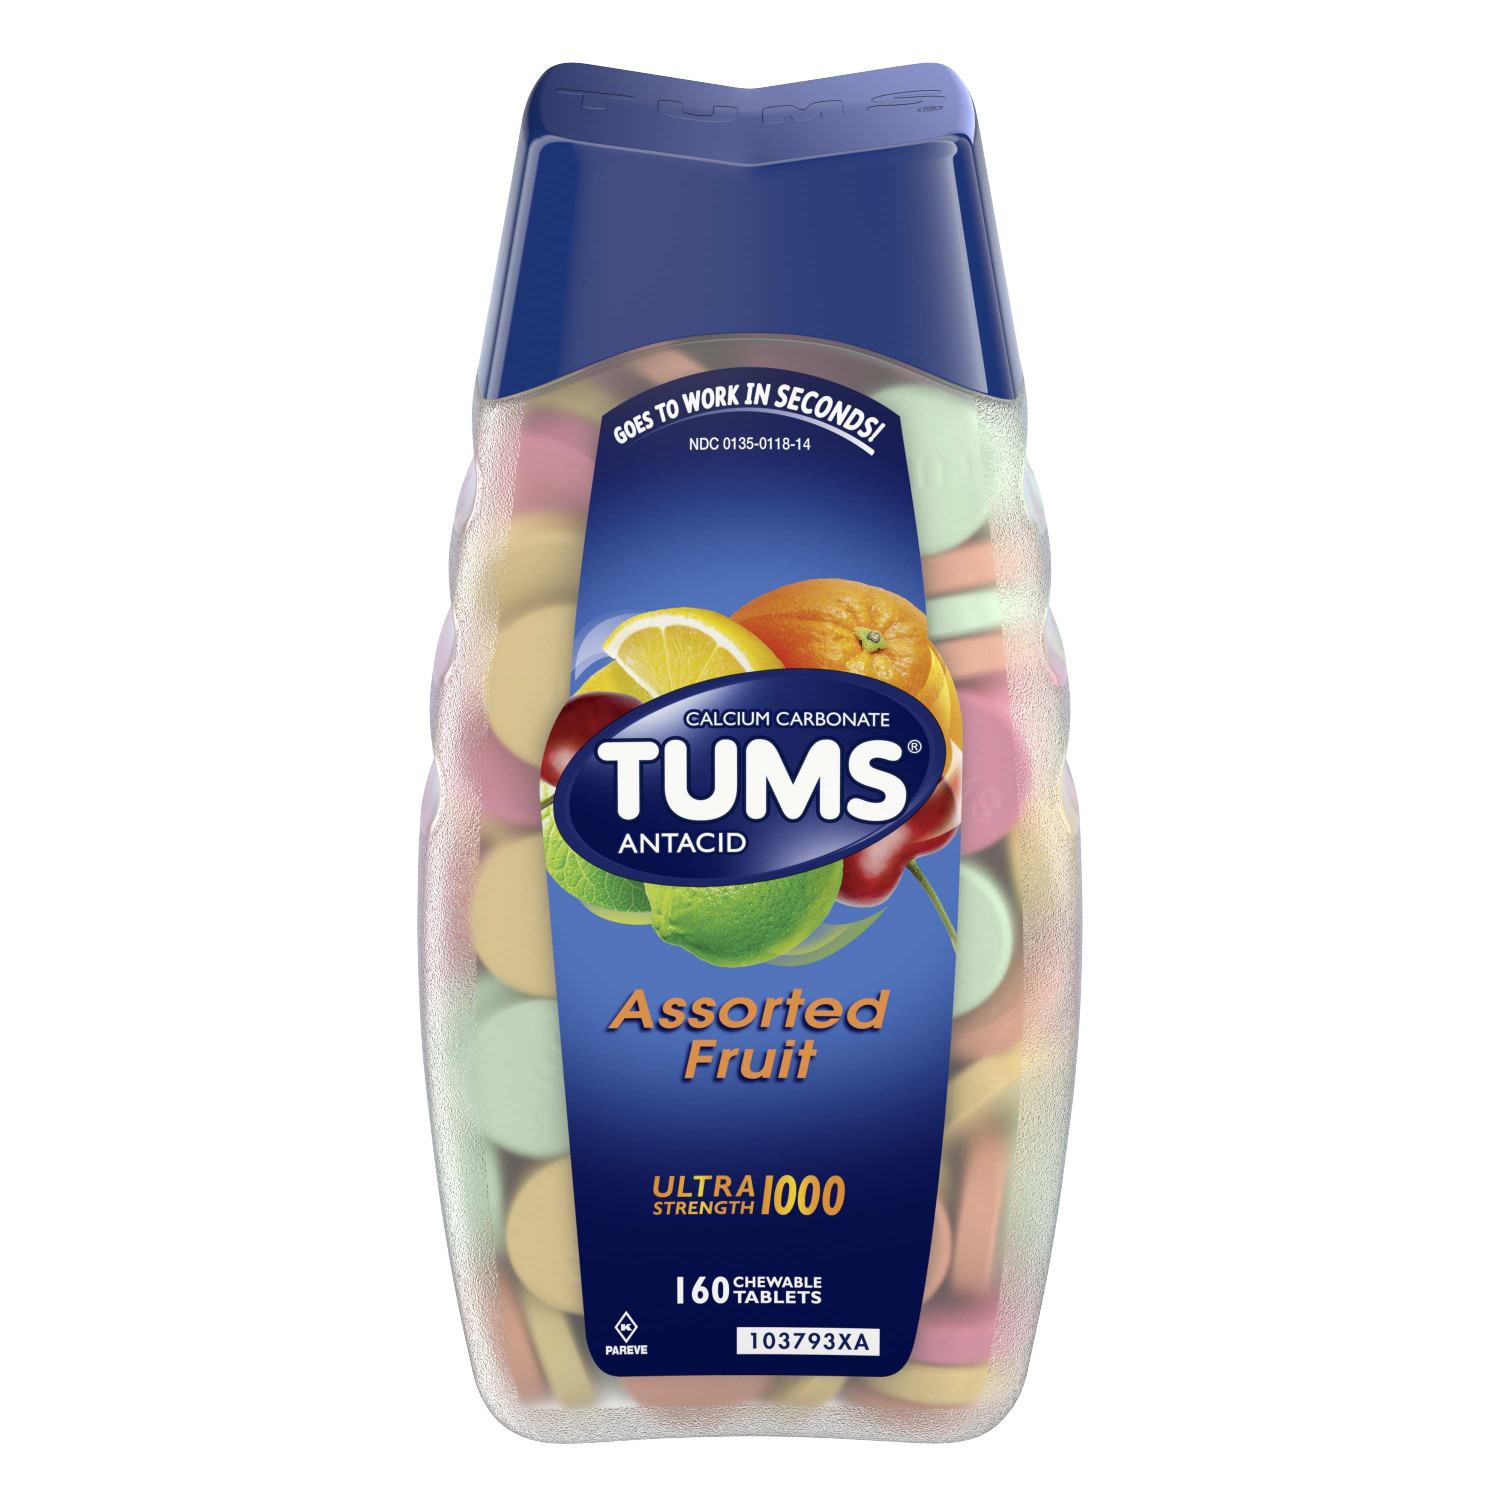 TUMS Antacid Chewable Tablets for Heartburn Relief, Ultra Strength, Assorted Fruit, 160 Tablets